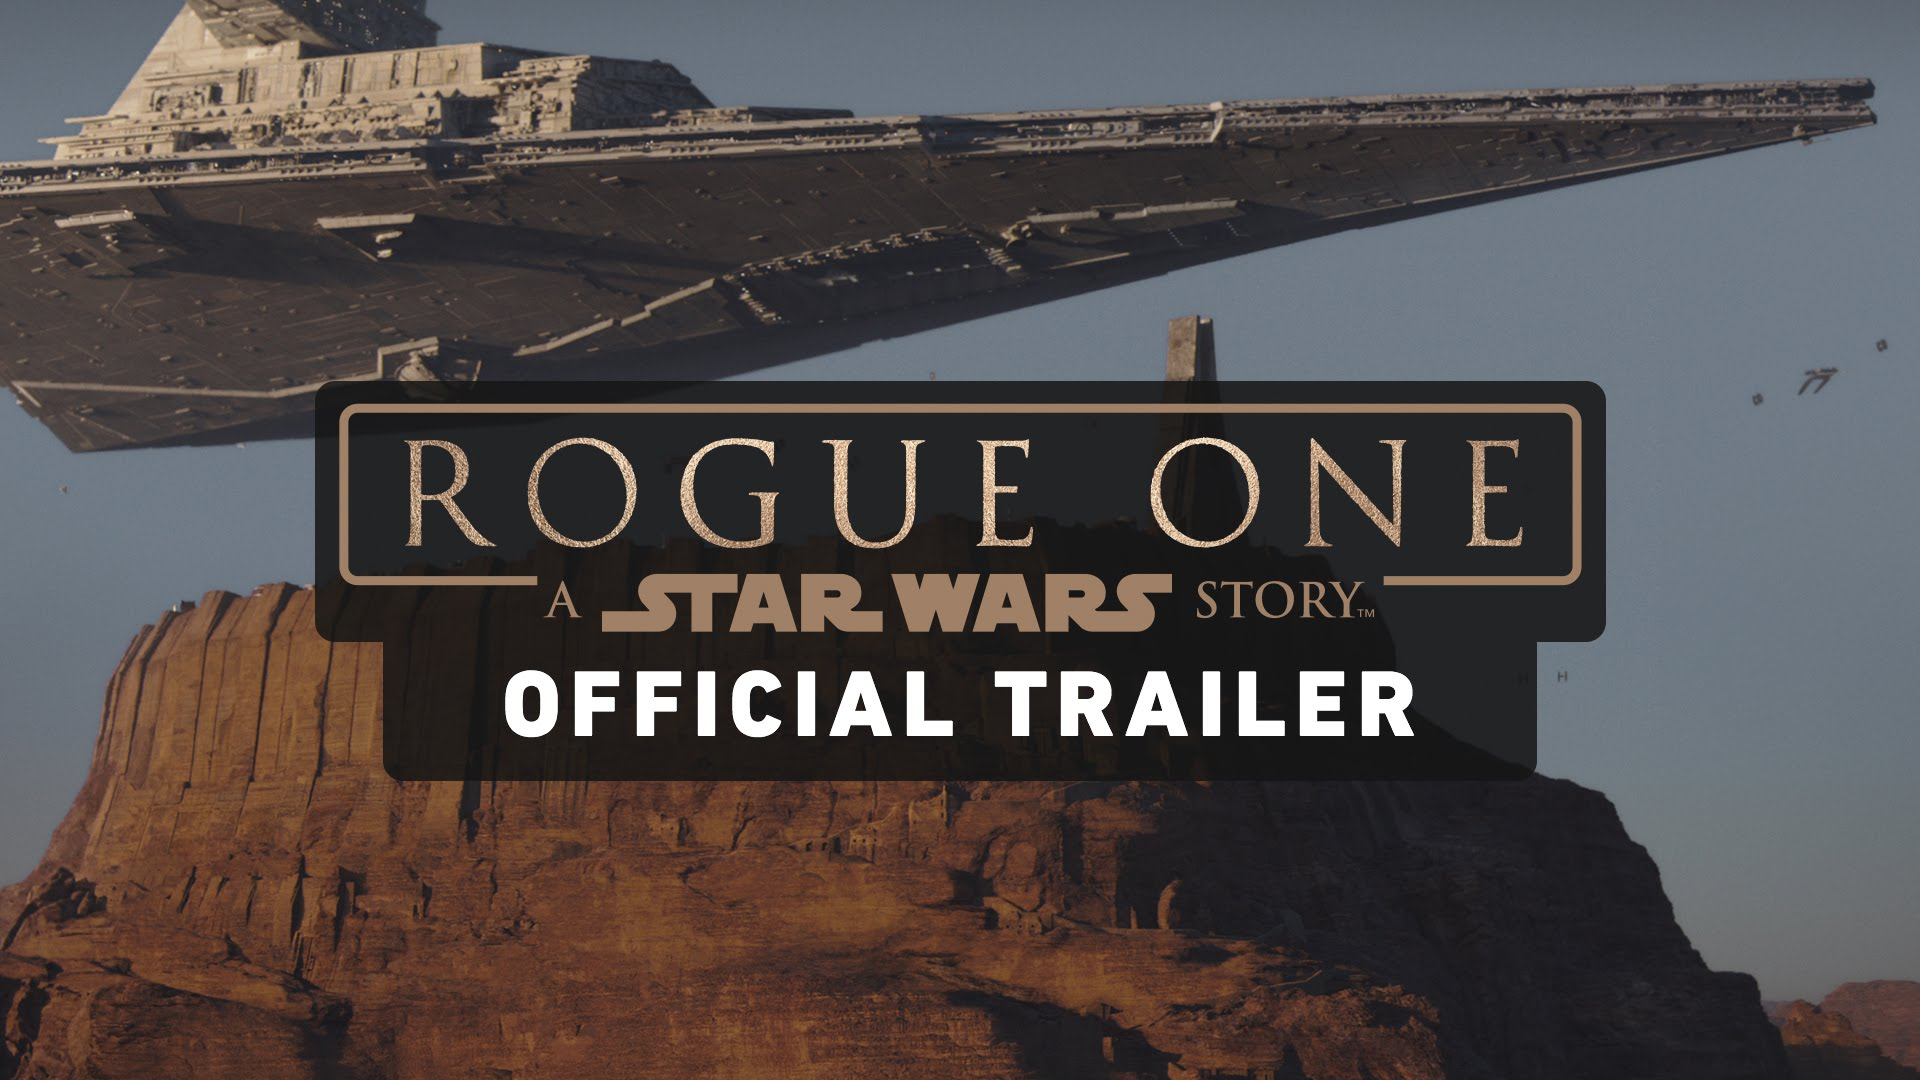 Star Wars Rogue One - Official Trailers